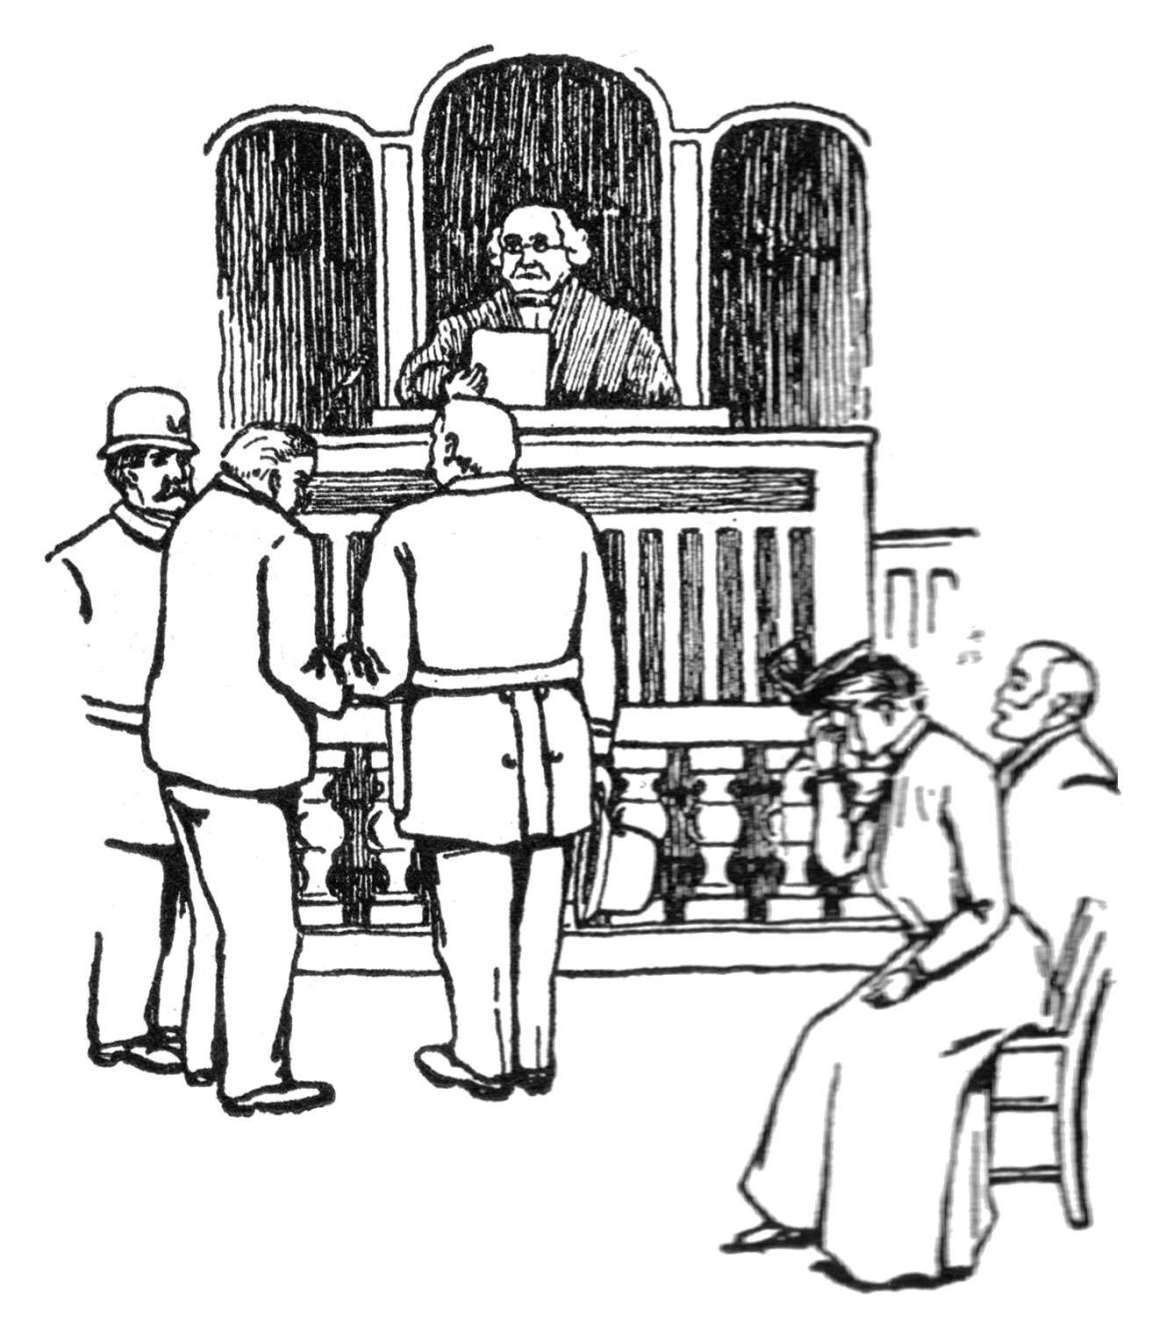 There's a speedy trial, and a verdict read, And a wife that weeps as the doom is said,